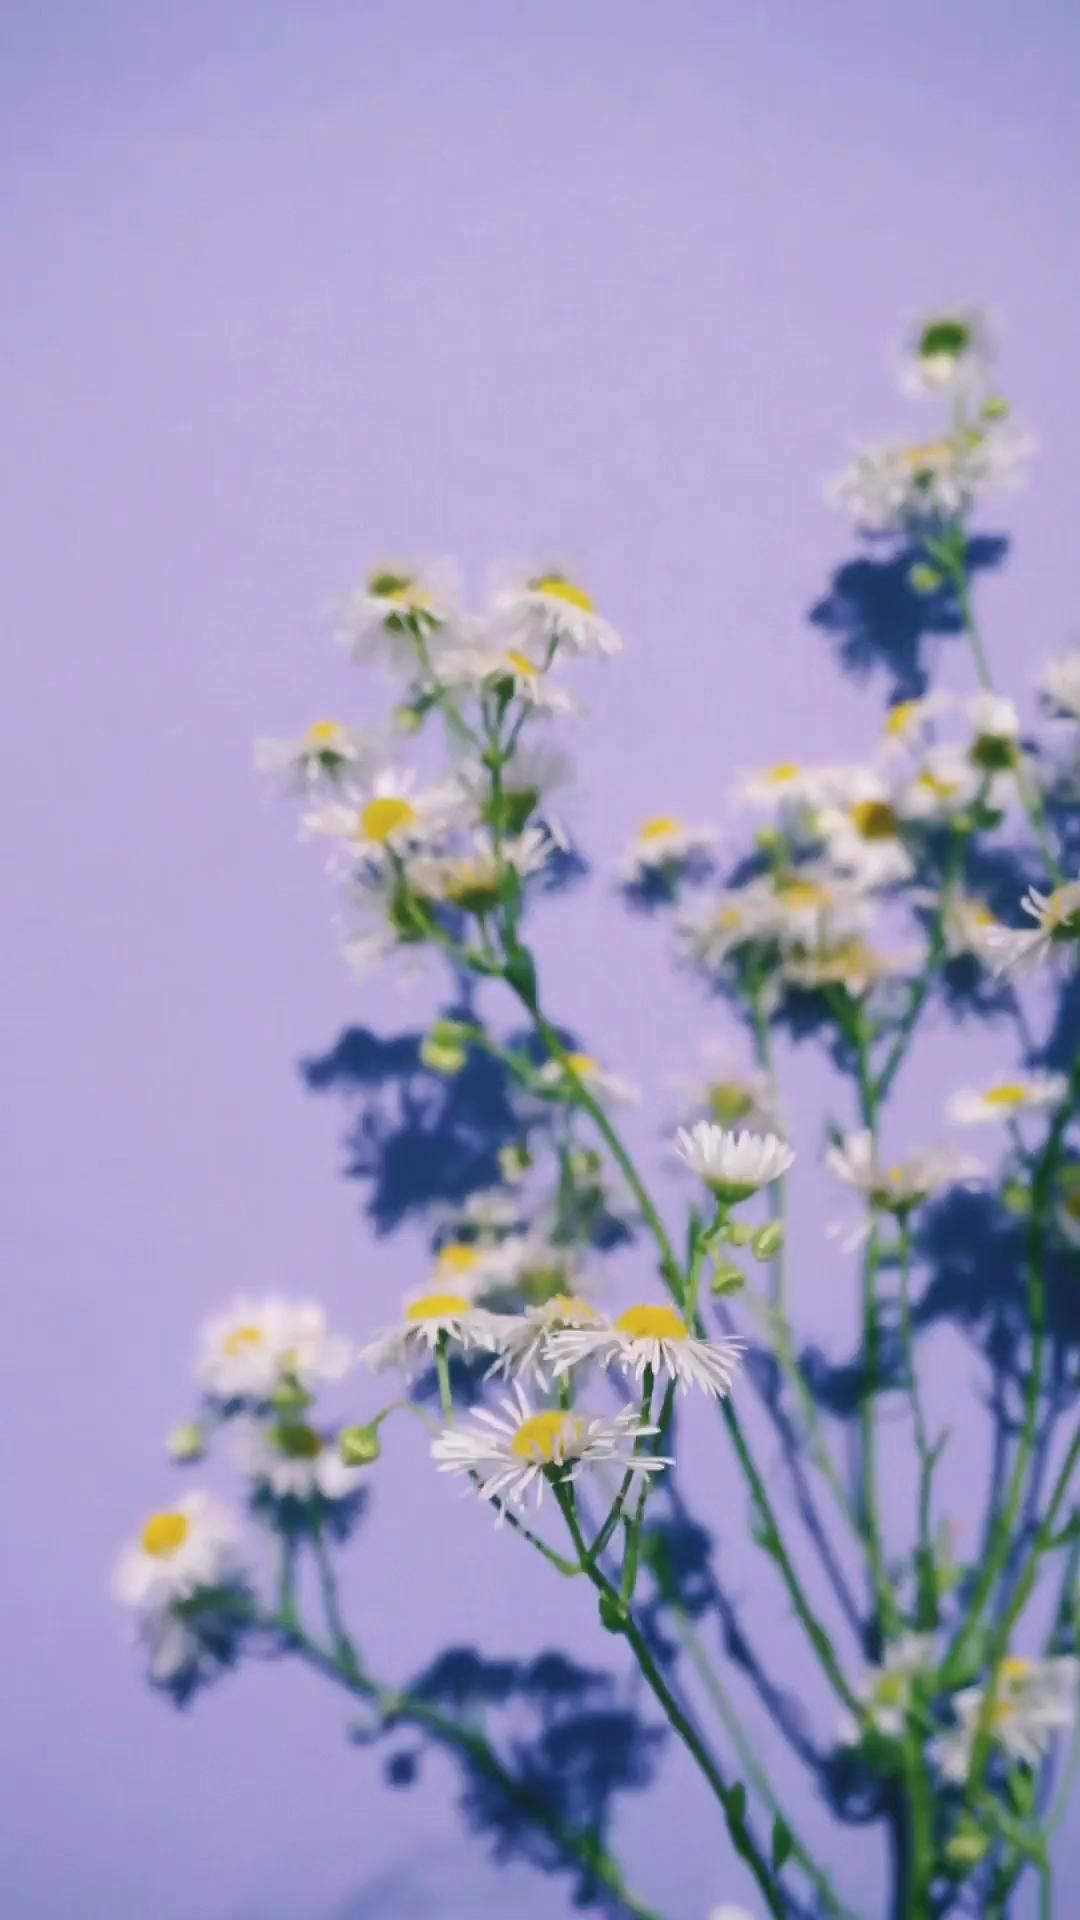 Swaying Daisies Against Purple Background